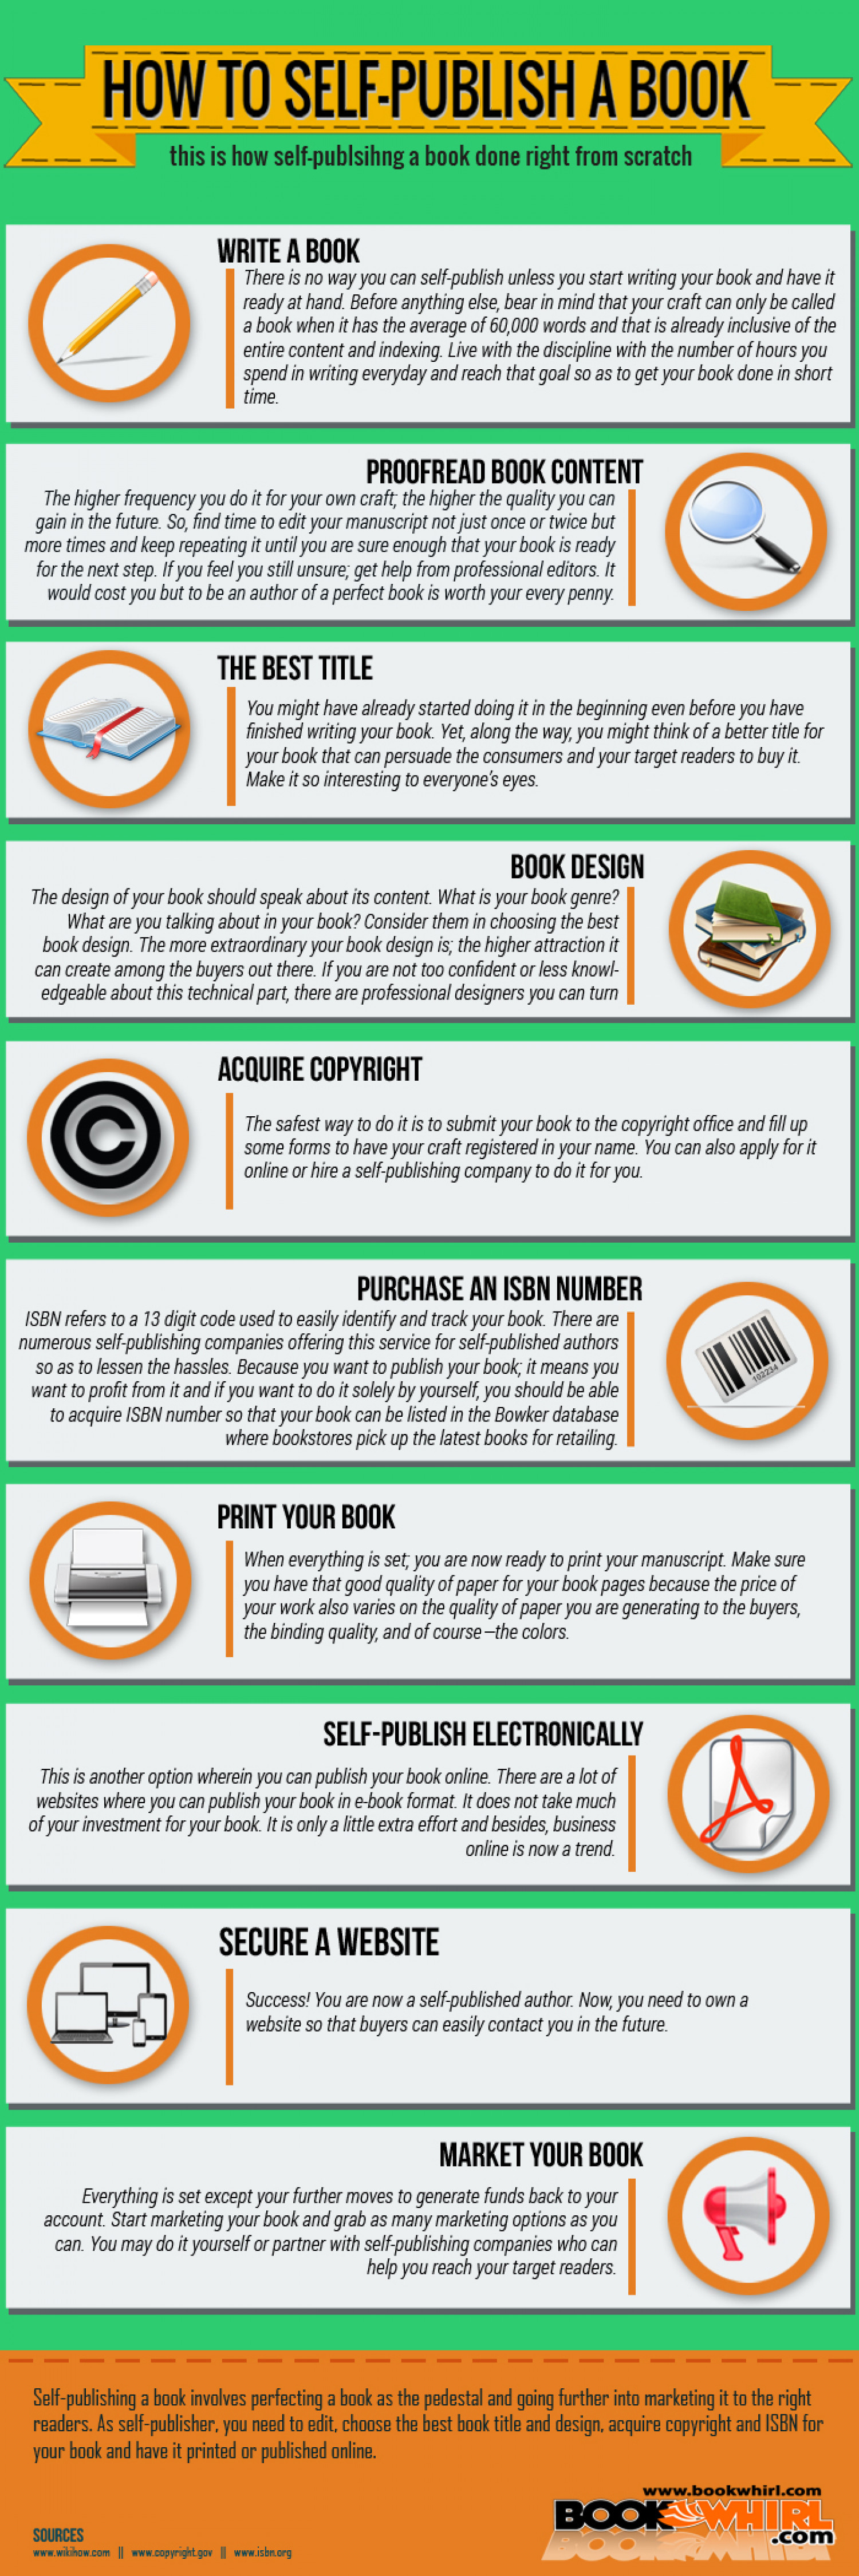 How to self-publish a book Infographic